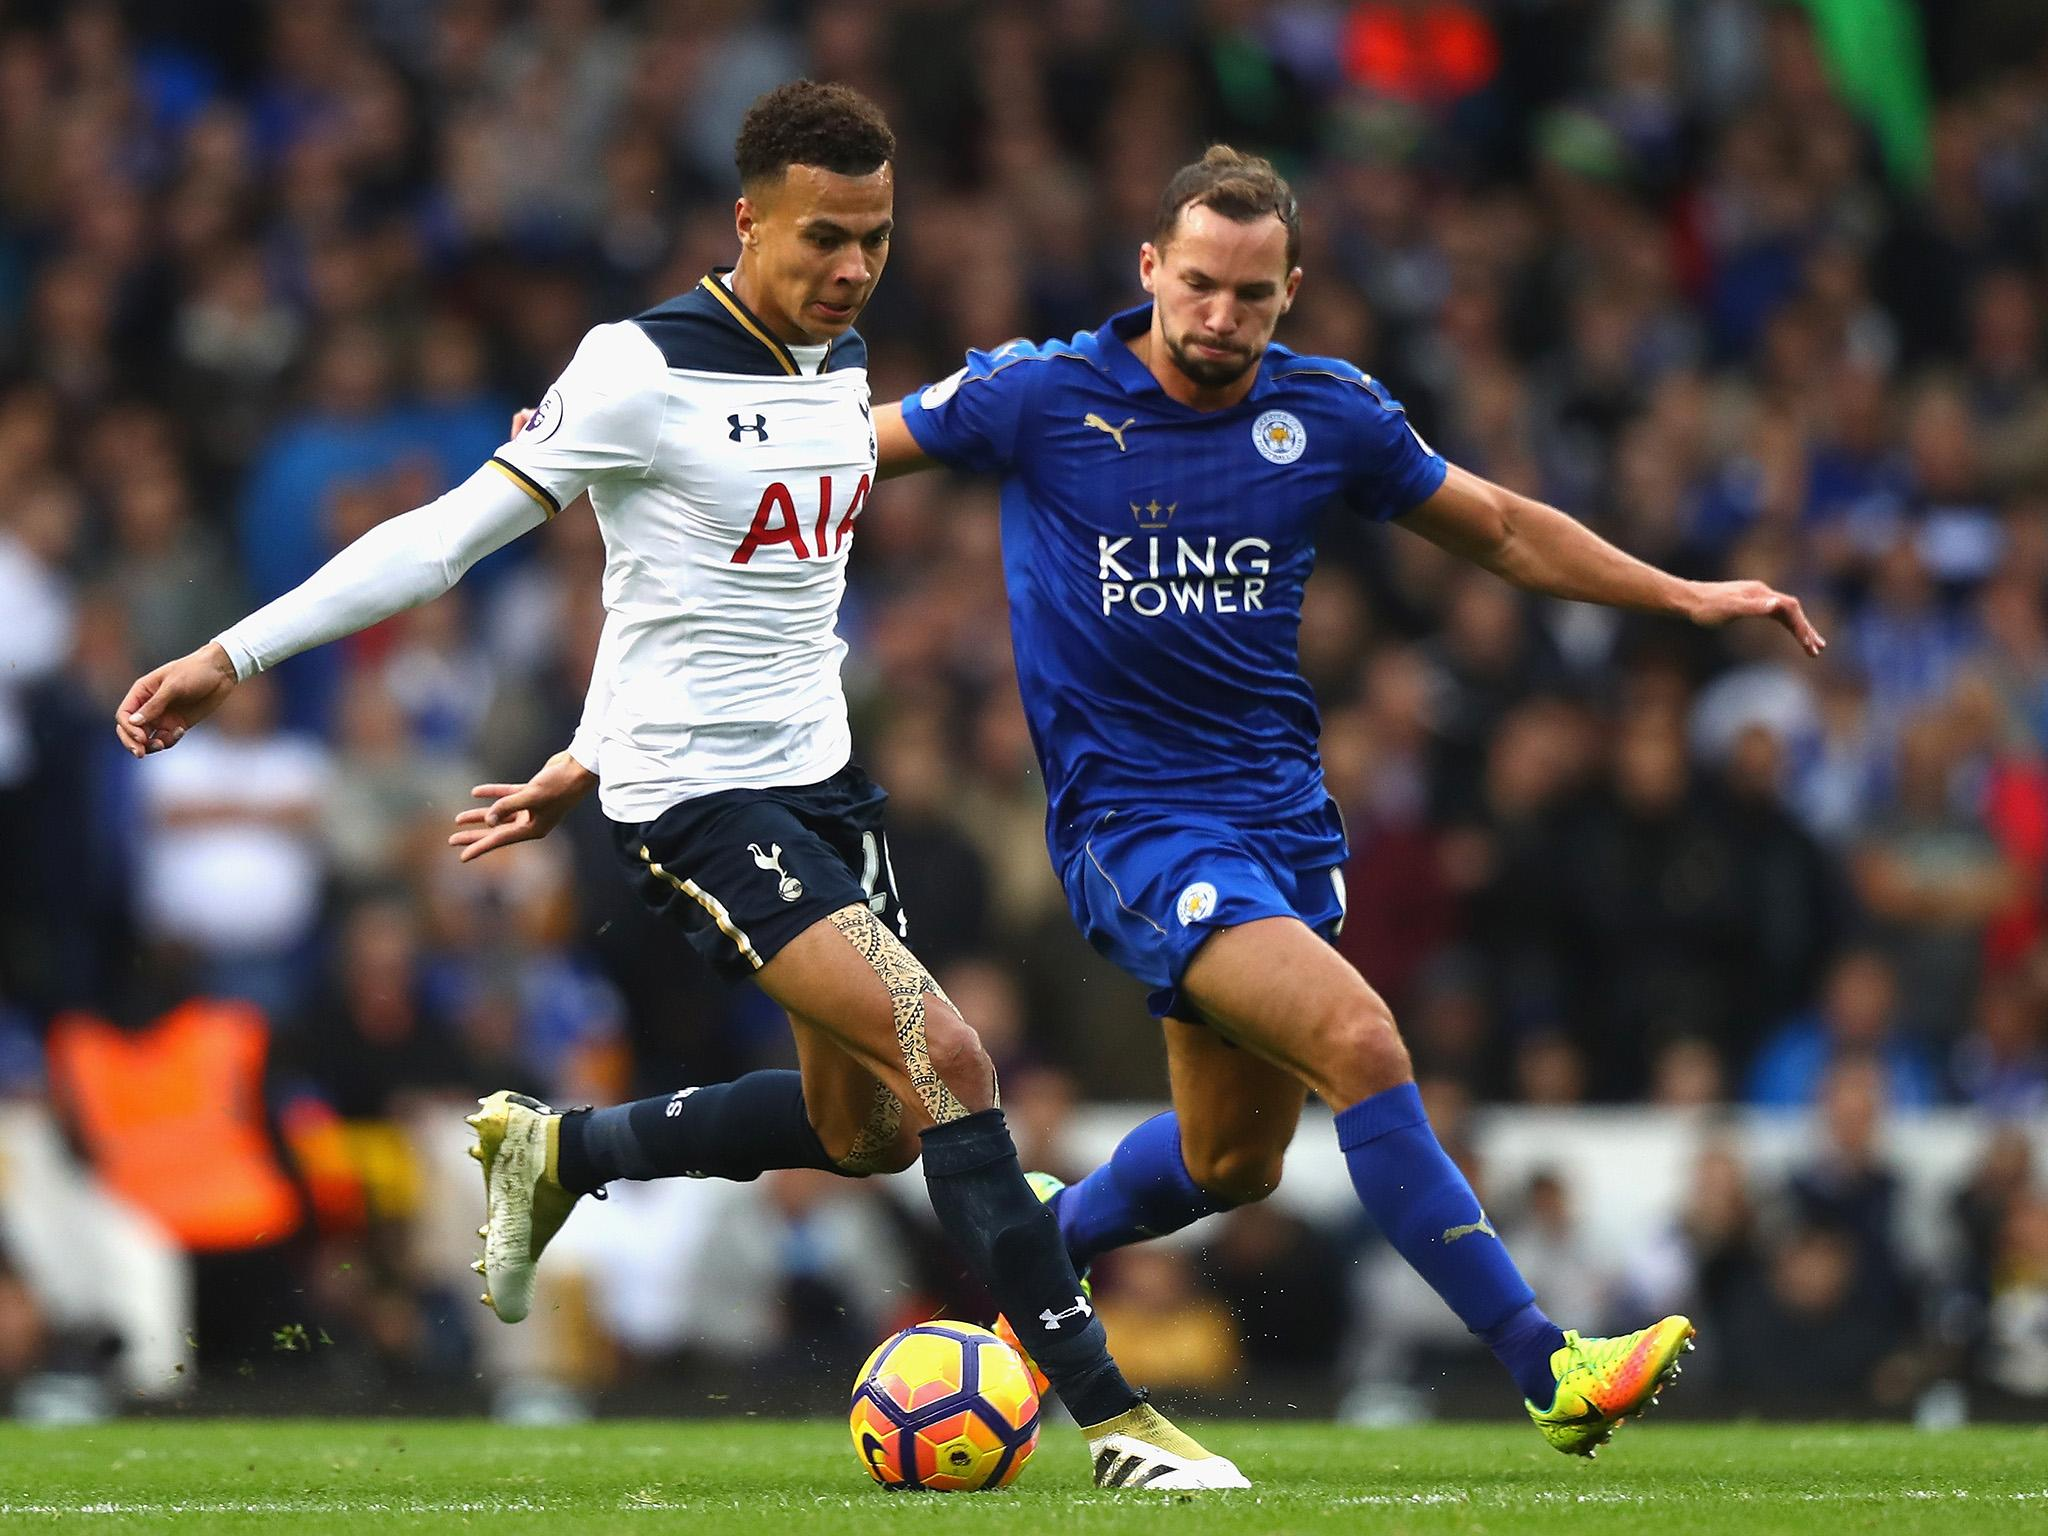 Tottenham Vs Leicester Live: Leicester City Vs Tottenham Hotspur: What Time Does It